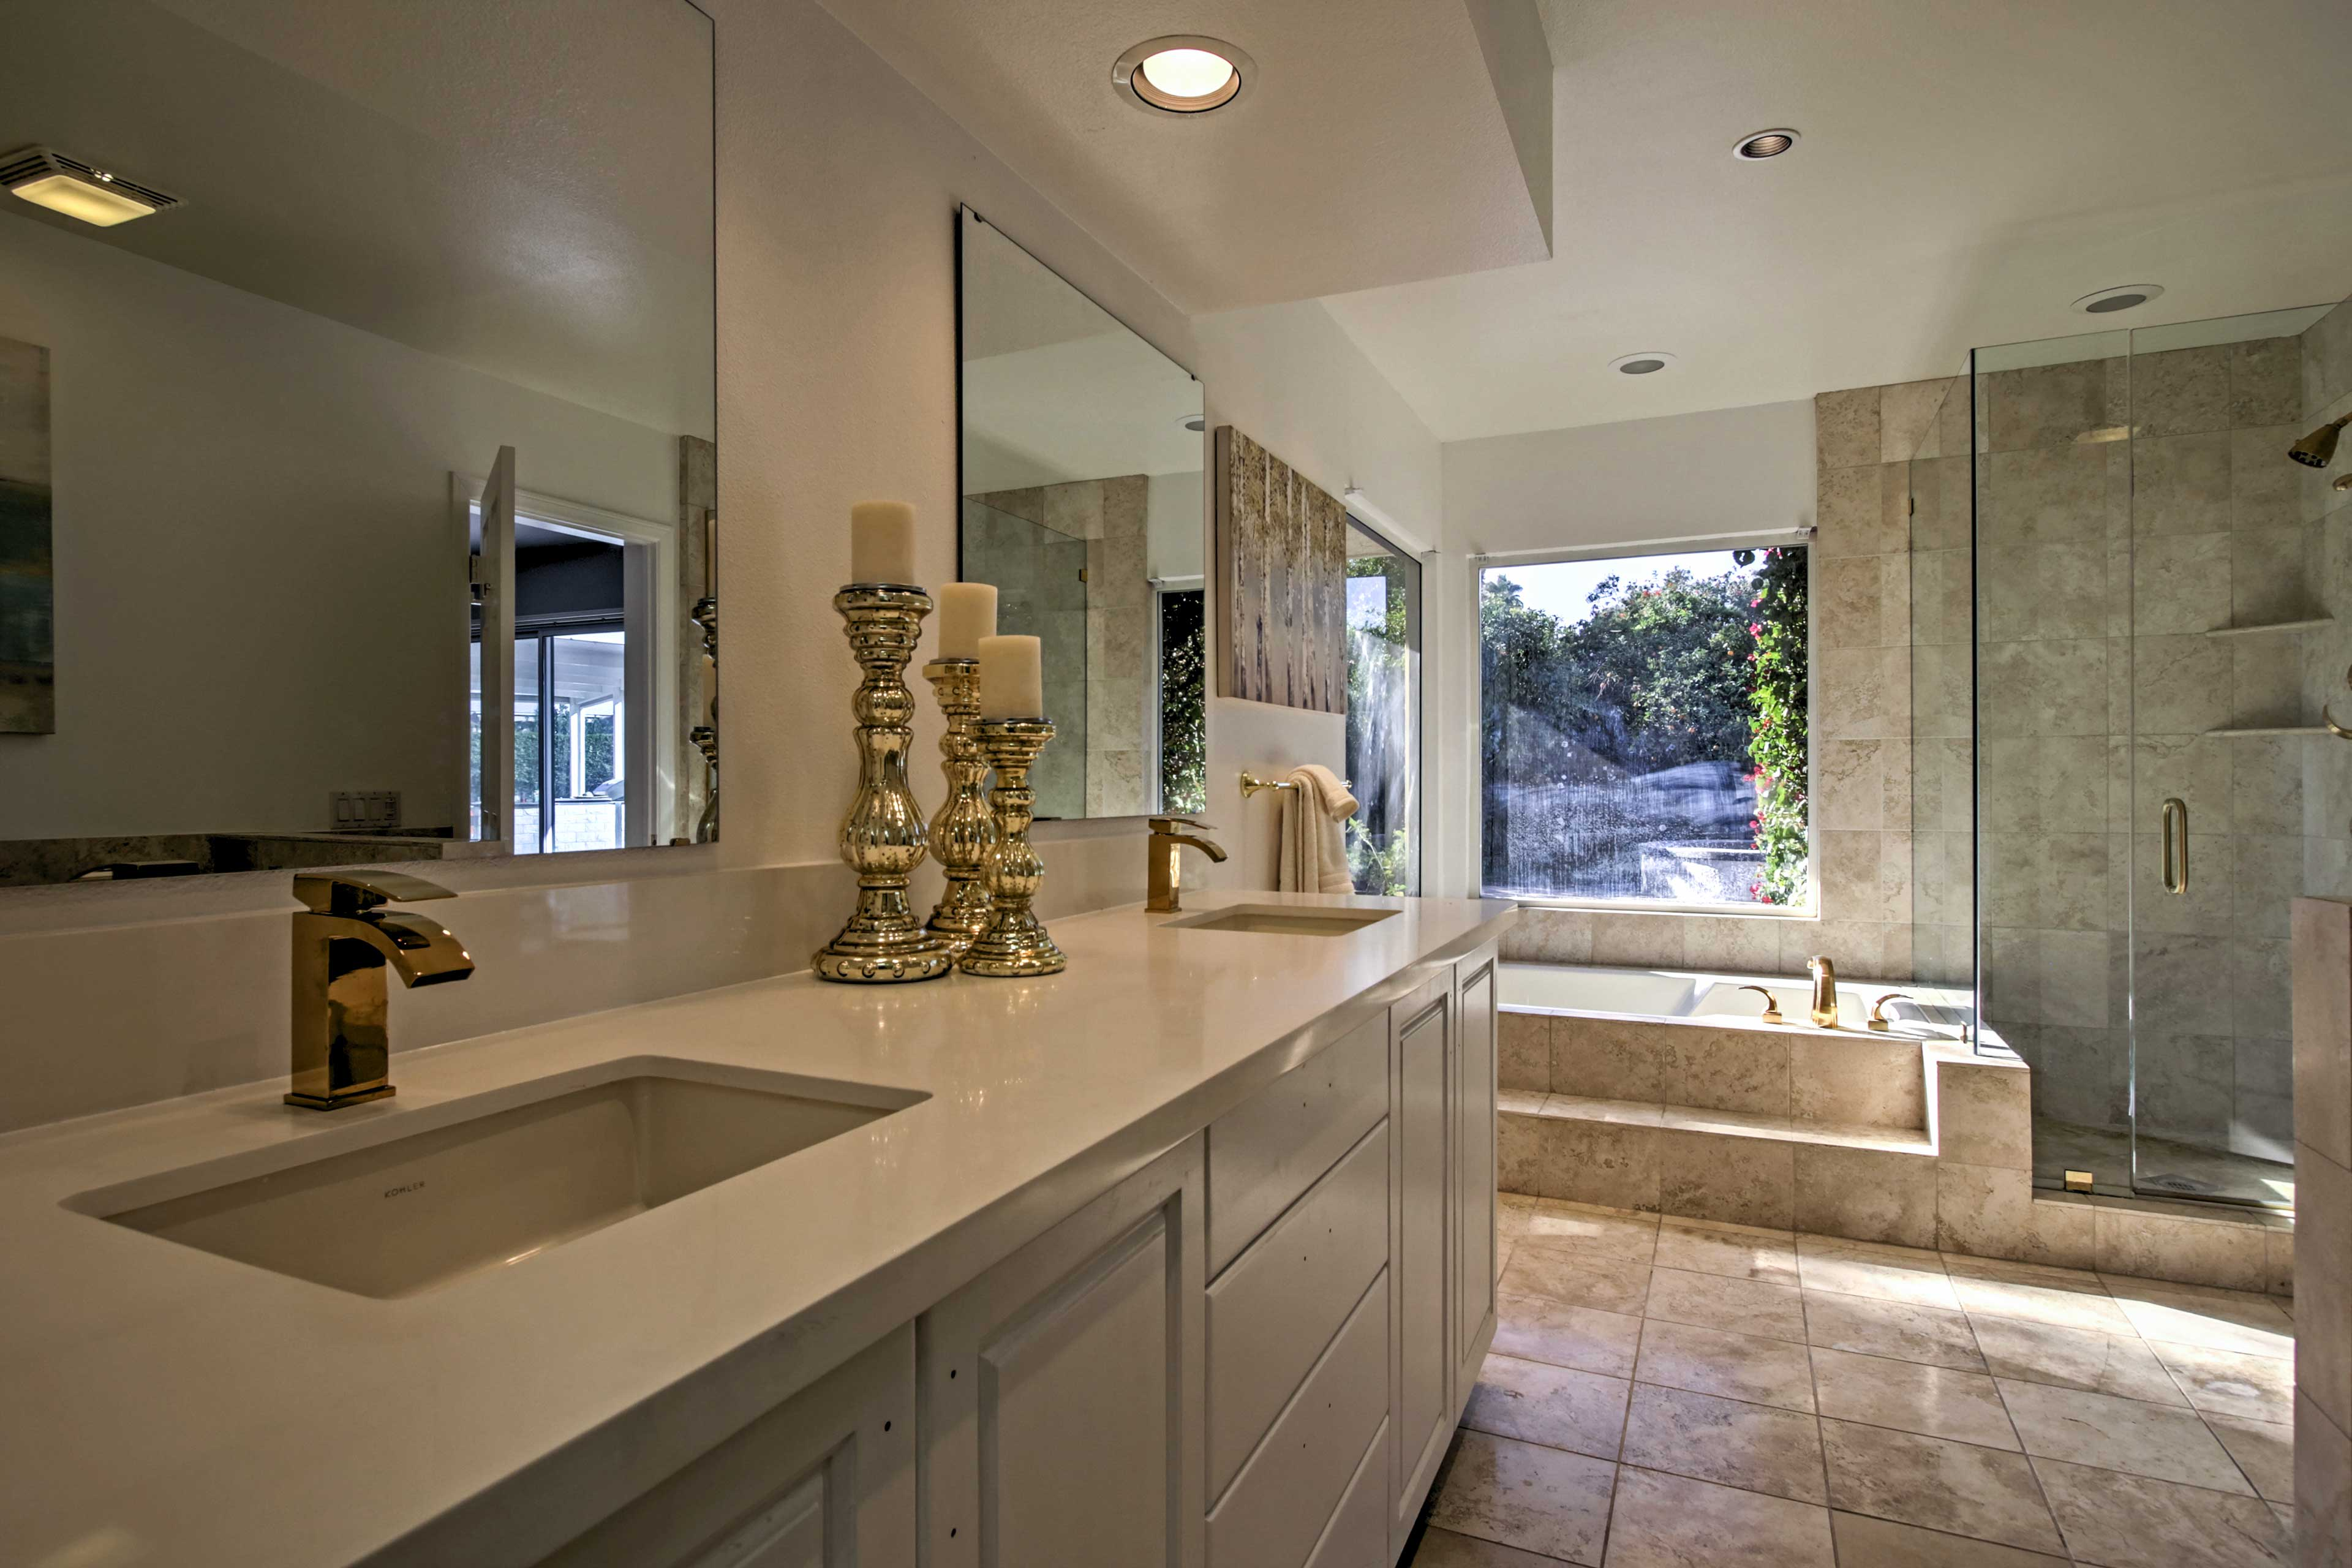 Plan out your day while freshening up in the pristine bathrooms.